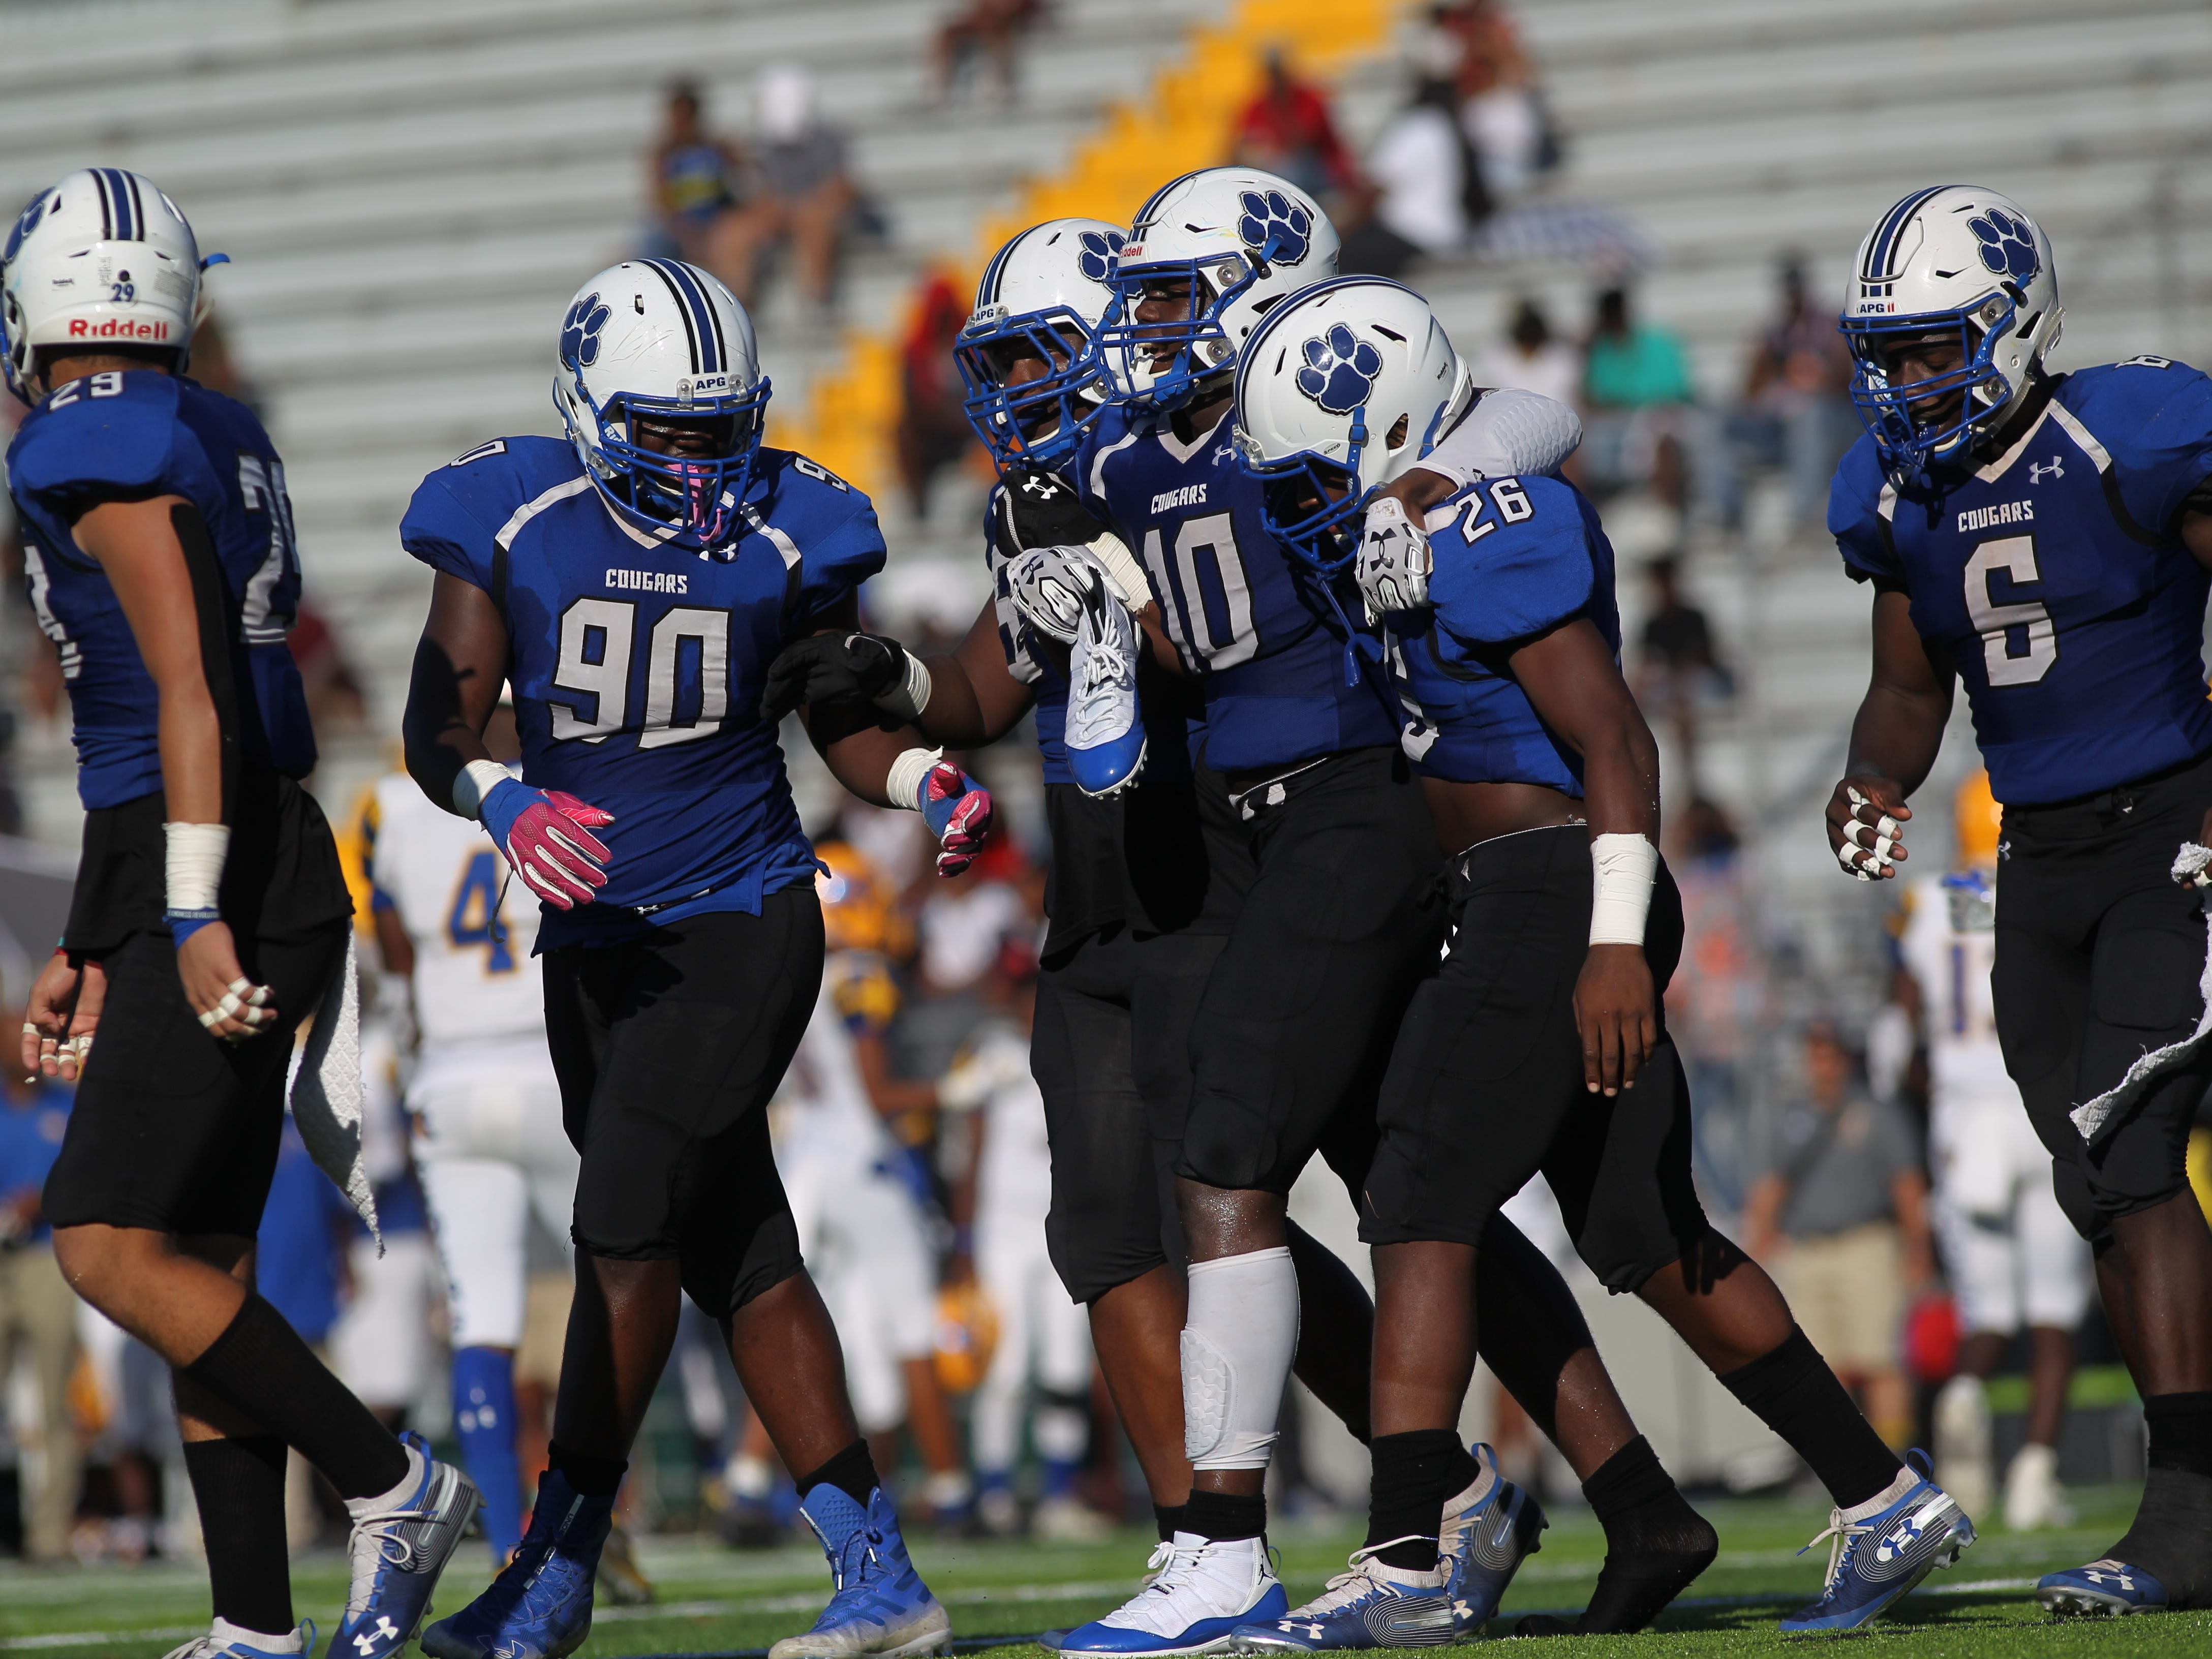 Godby's Cortez Andrews gets helped off the field after losing his shoe and suffering cramps during Saturday's game against Rickards.